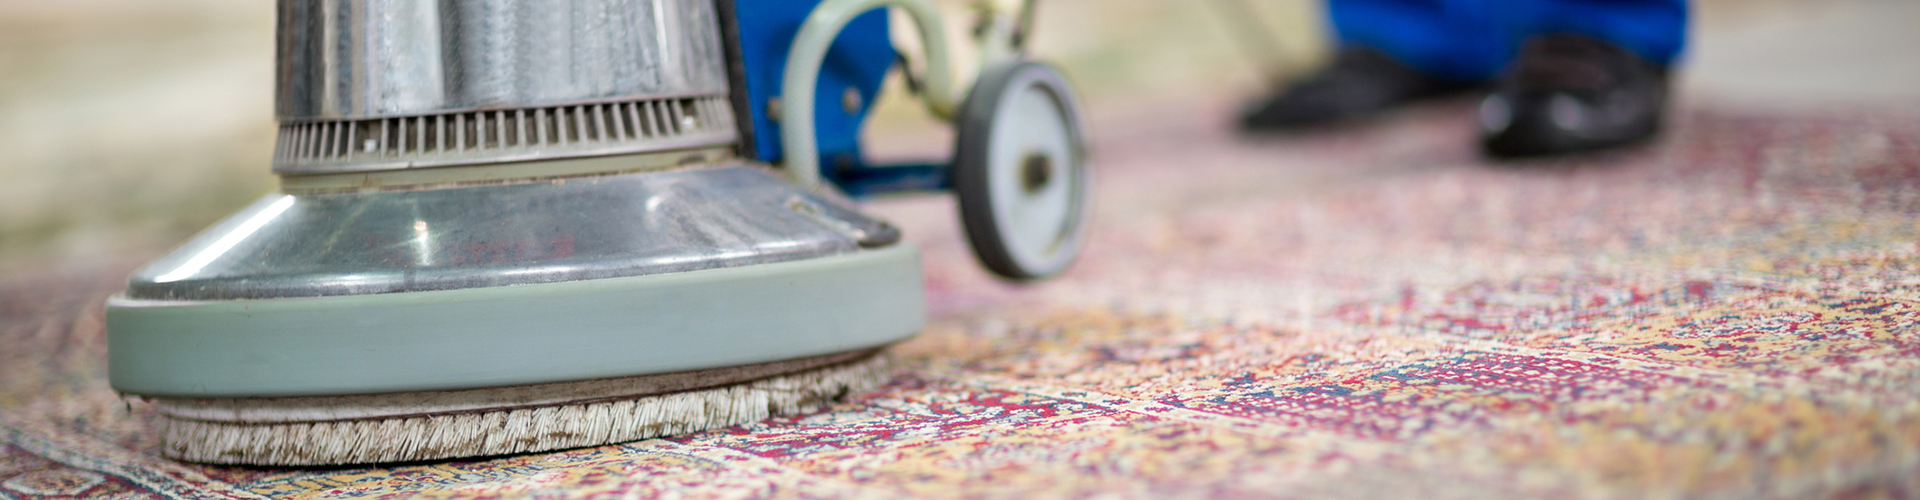 How to hire the Best carpet cleaners in Adelaide Area